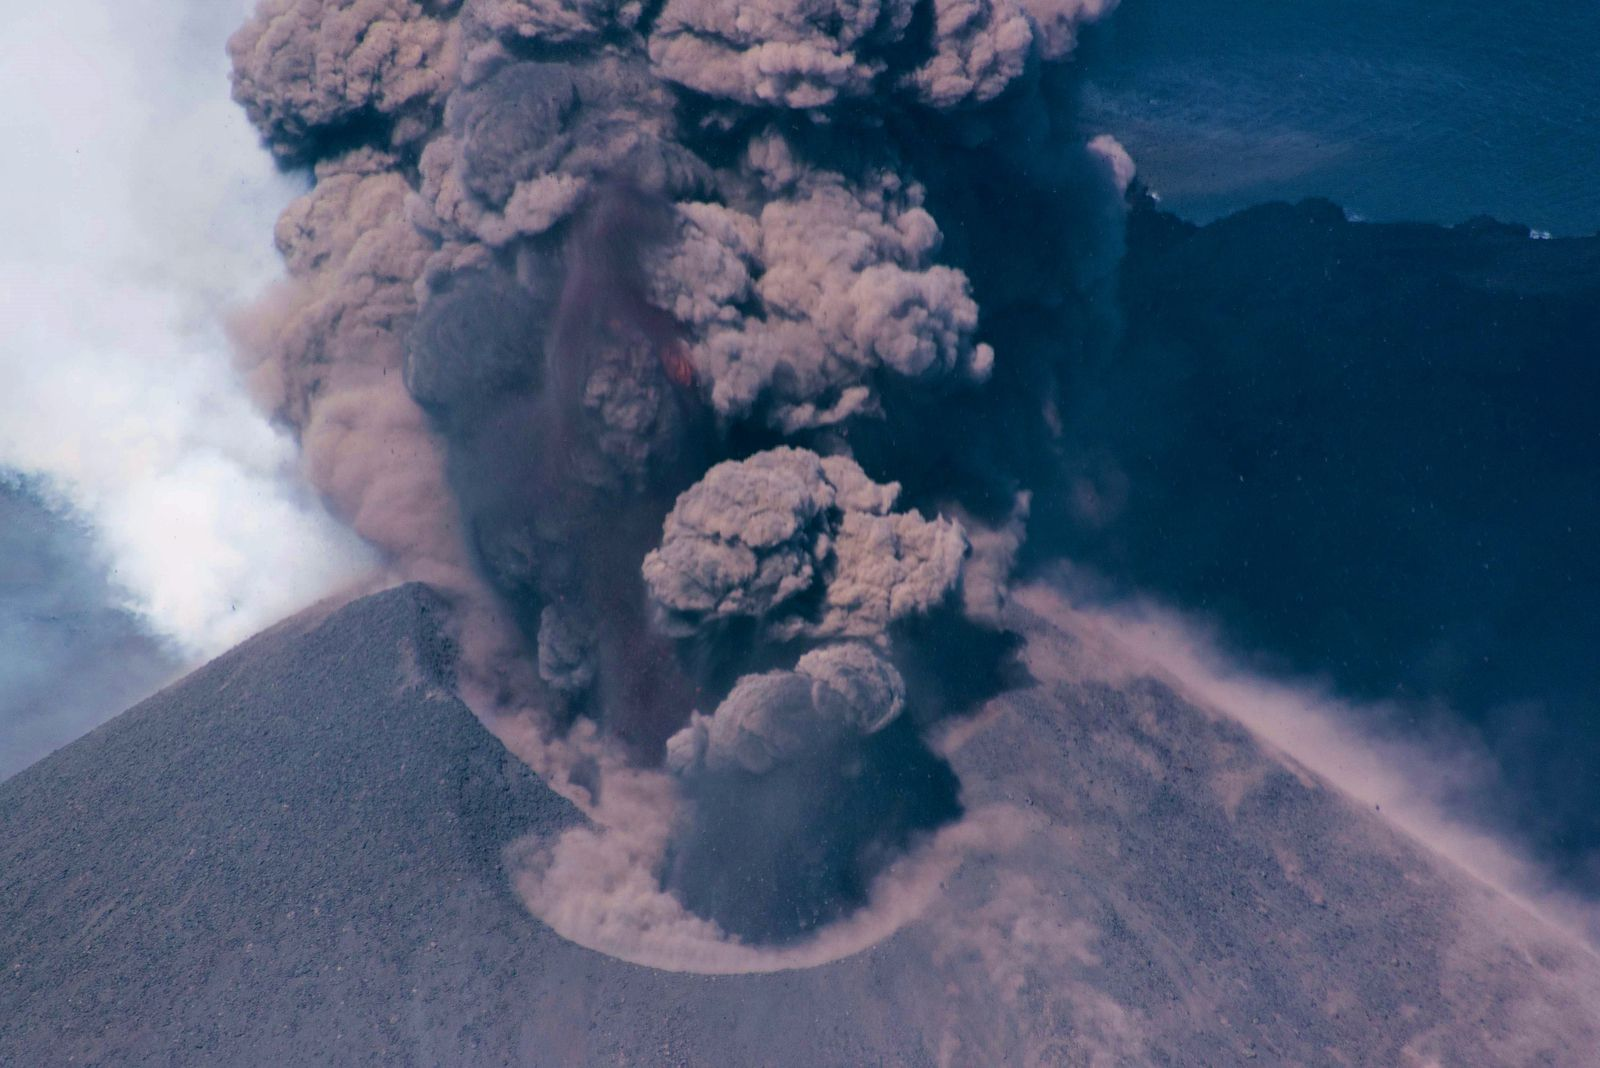 Nishinoshima - coalescence of craters and glowing projections in the ash plume - photo JCG 19.06.2020